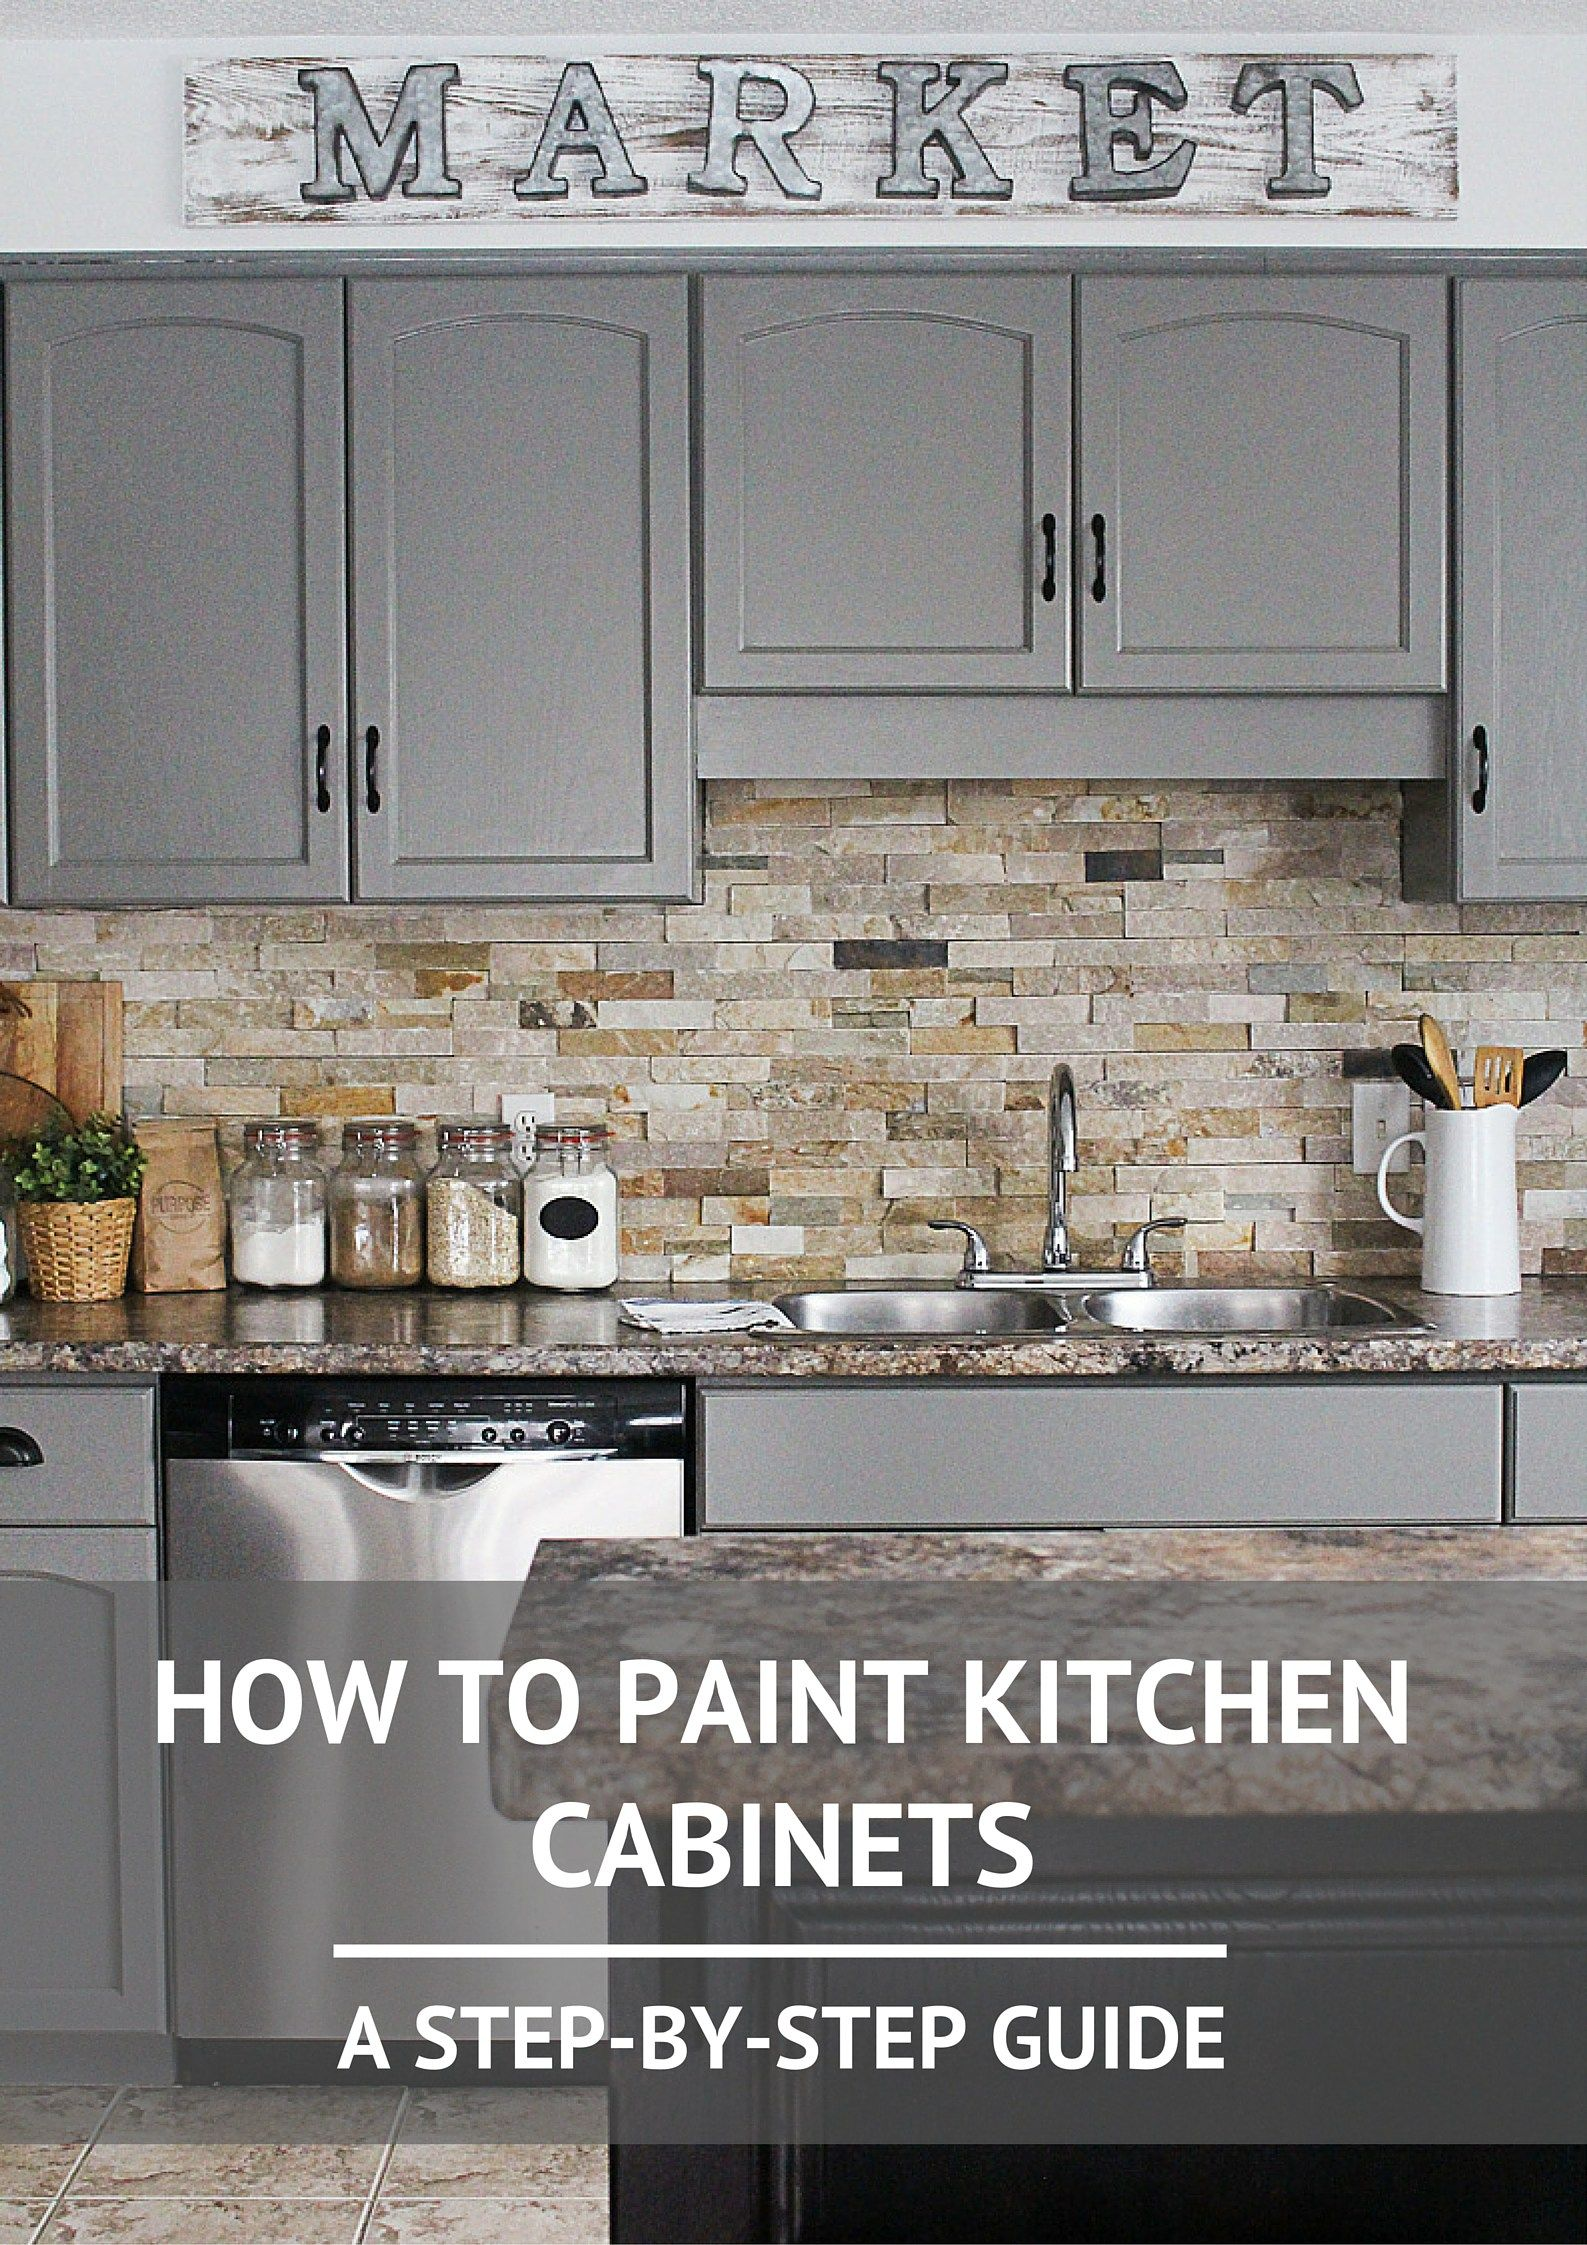 how to paint kitchen cabinets - Kitchen Cabinet Paint Colors